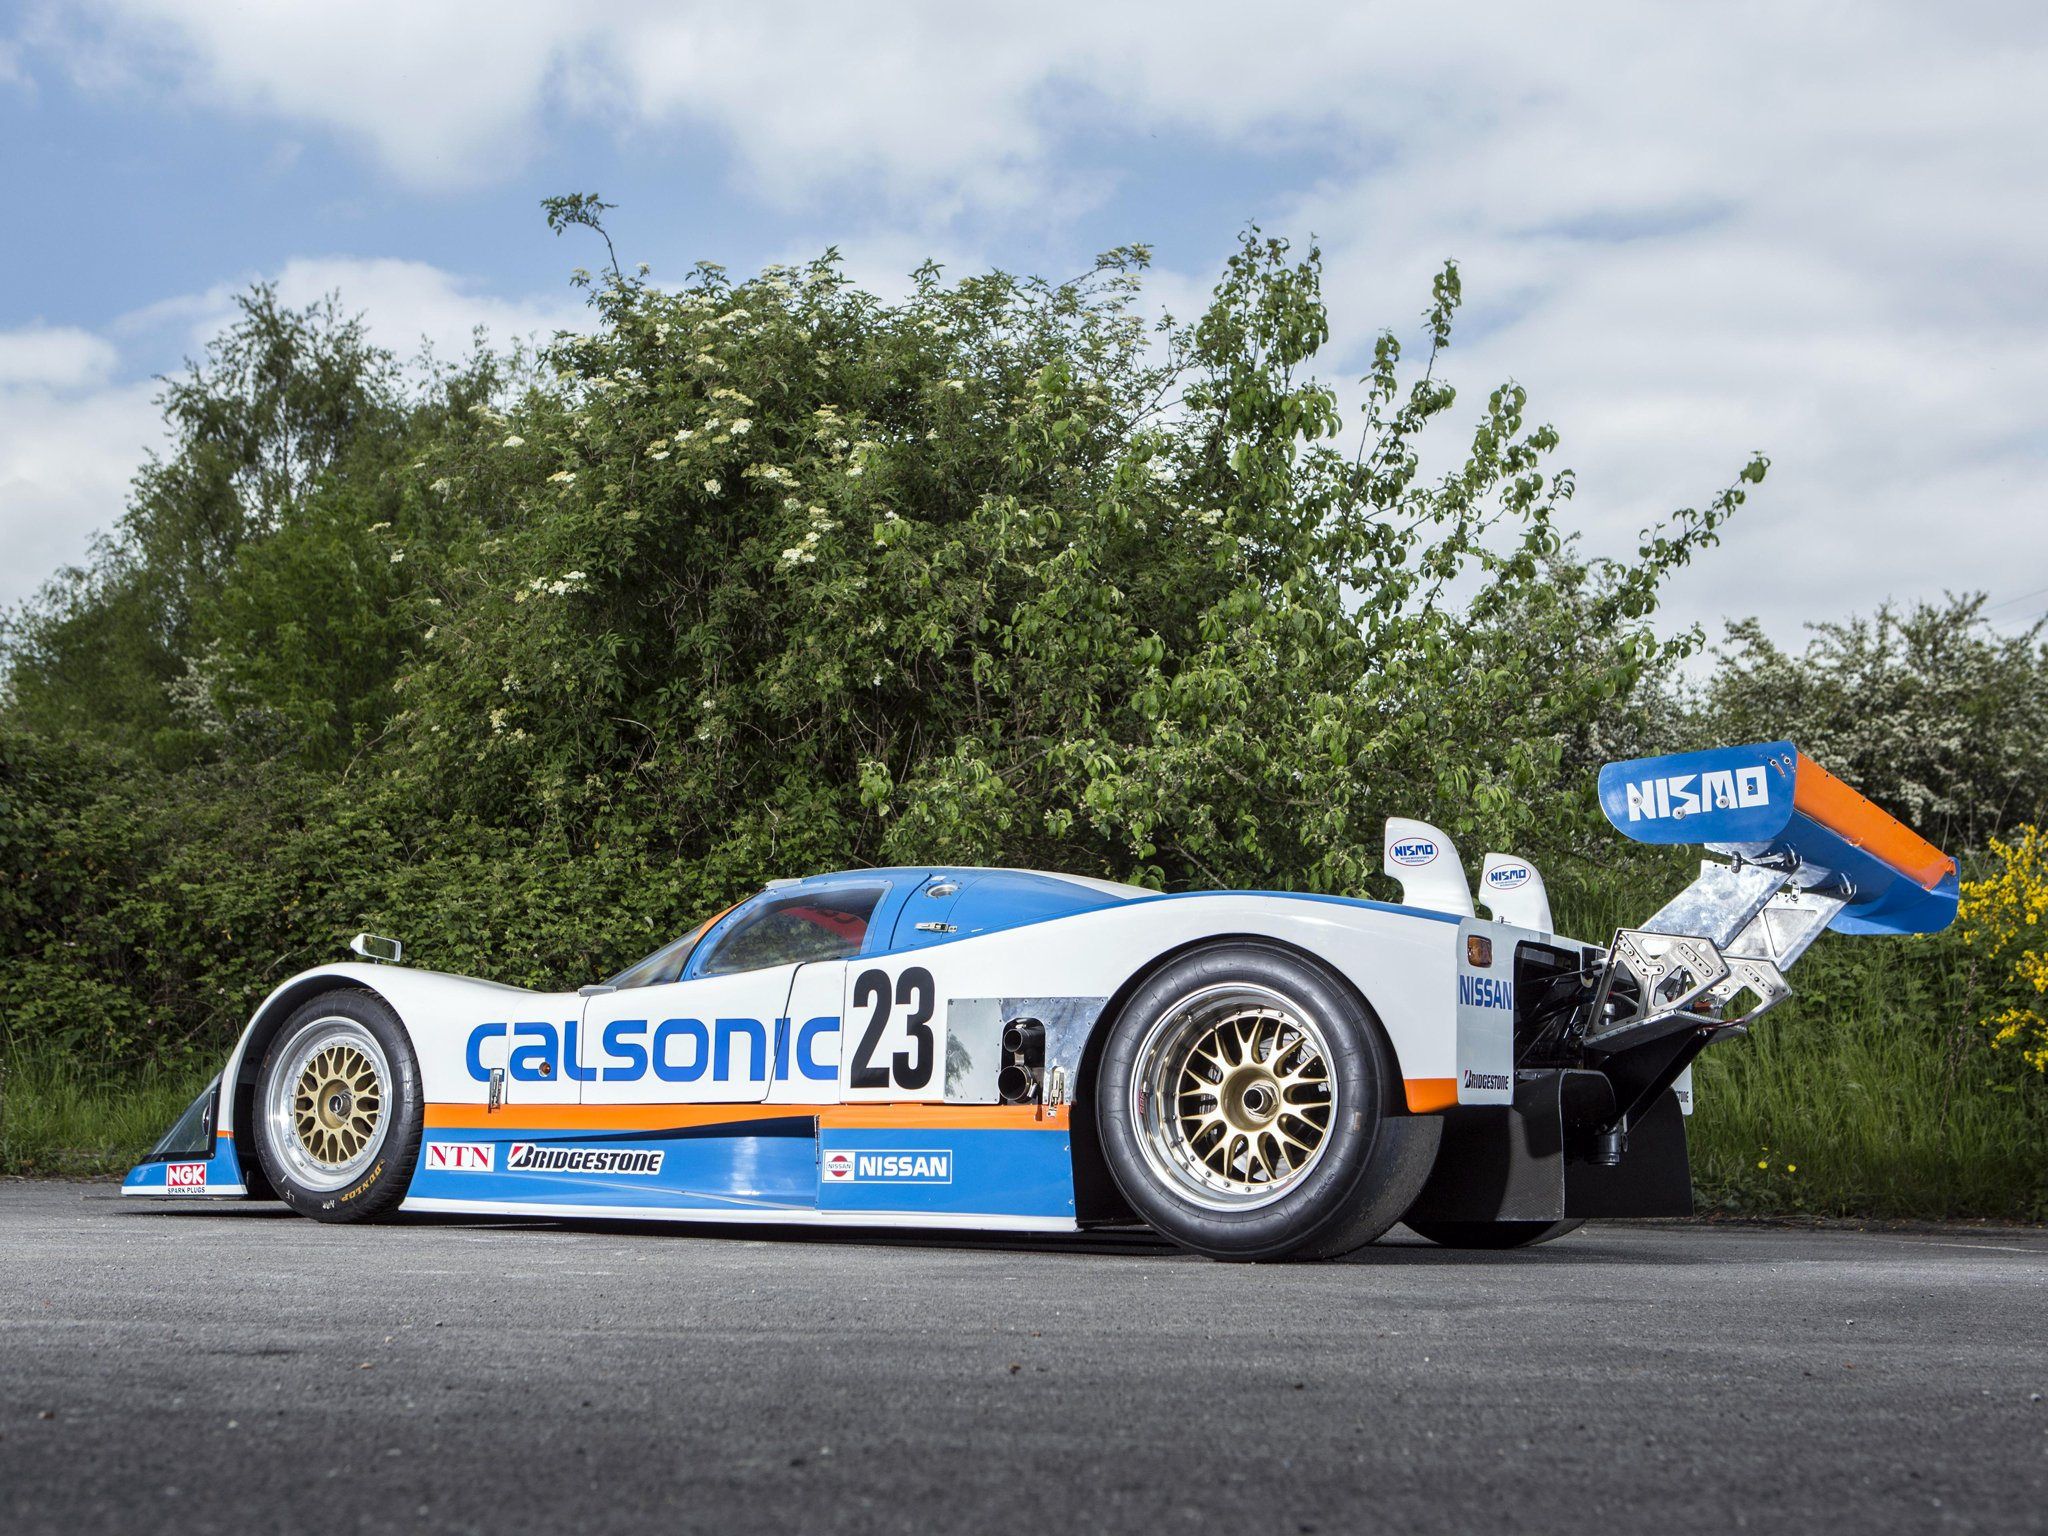 Racing wallpaper racing wallpapers and - 1987 Nissan R87e Le Mans Race Racing Rd Wallpaper